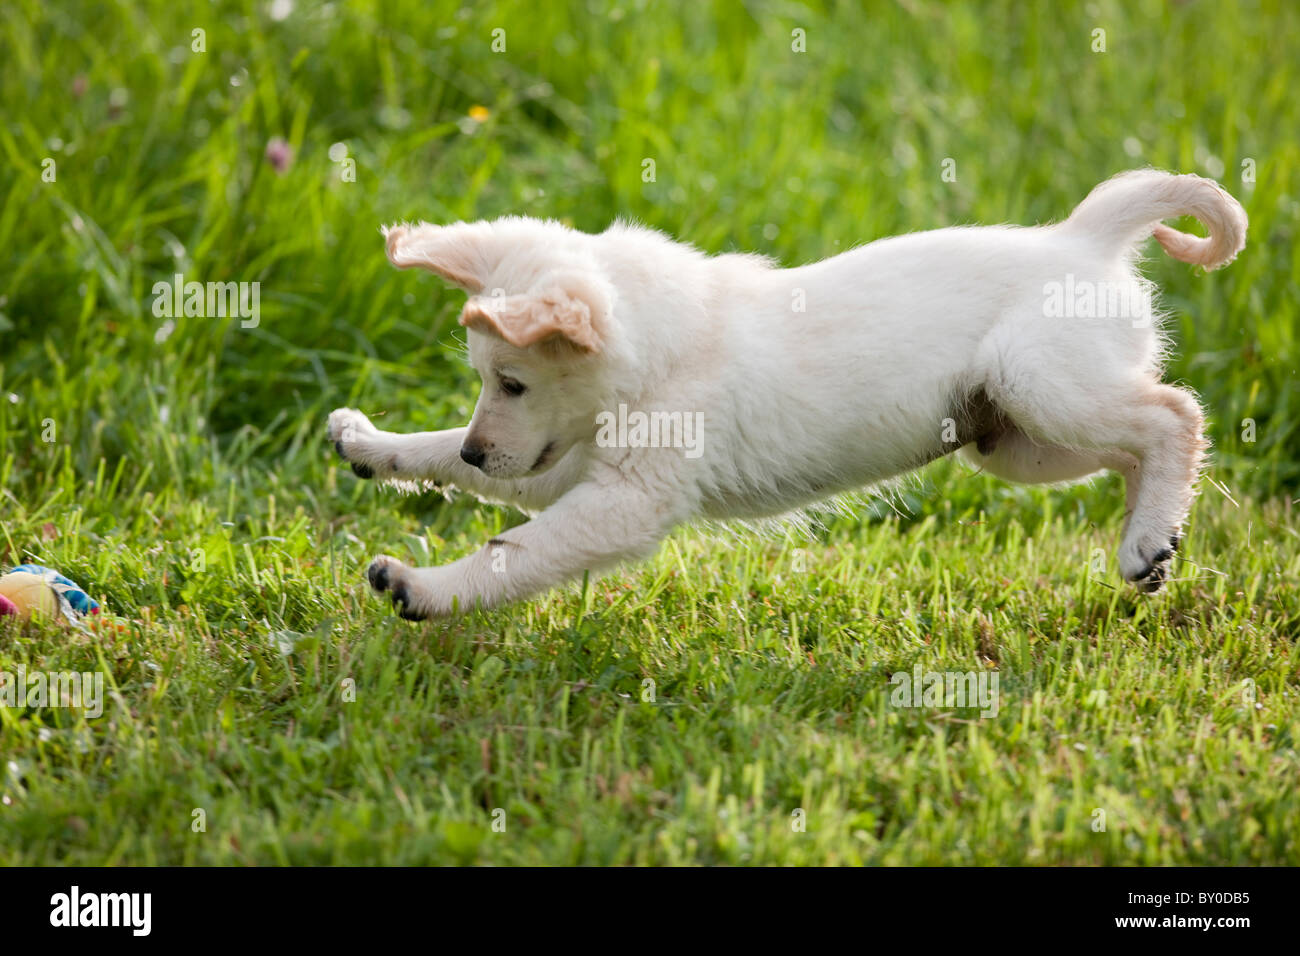 how to stop your dog from jumping up on the sofa 10 spring street ashton microfiber bed sand golden retriever puppy stock photo